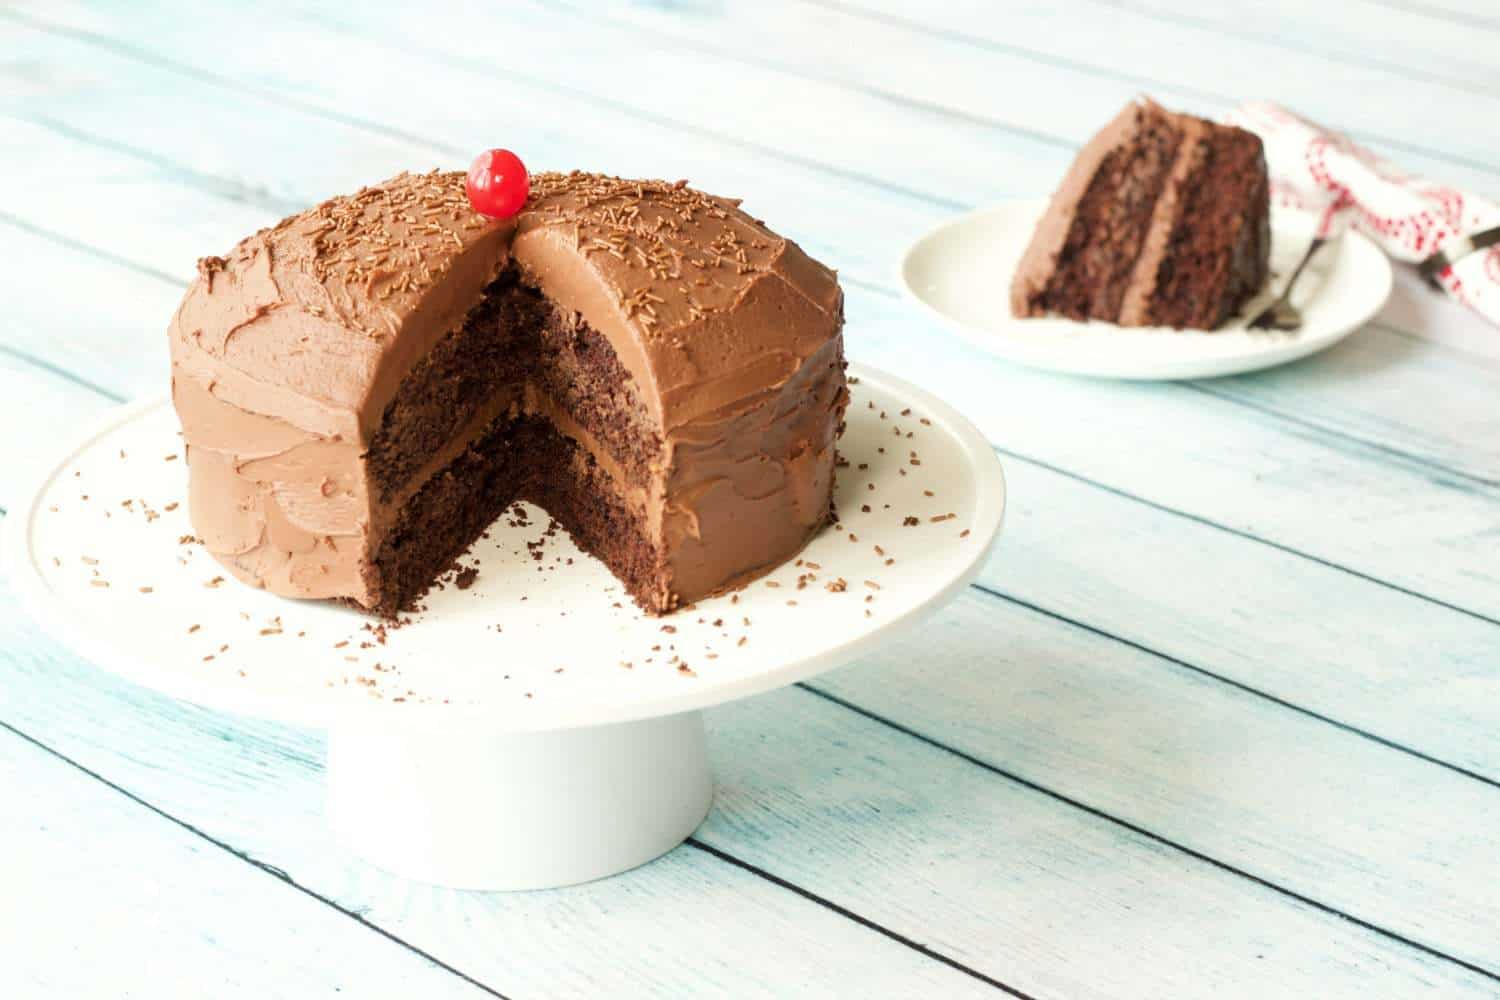 Gluten-Free Chocolate Cake with Vegan Chocolate Ganache Frosting #vegan #lovingitvegan #glutenfree #dairyfree #dessert #cake